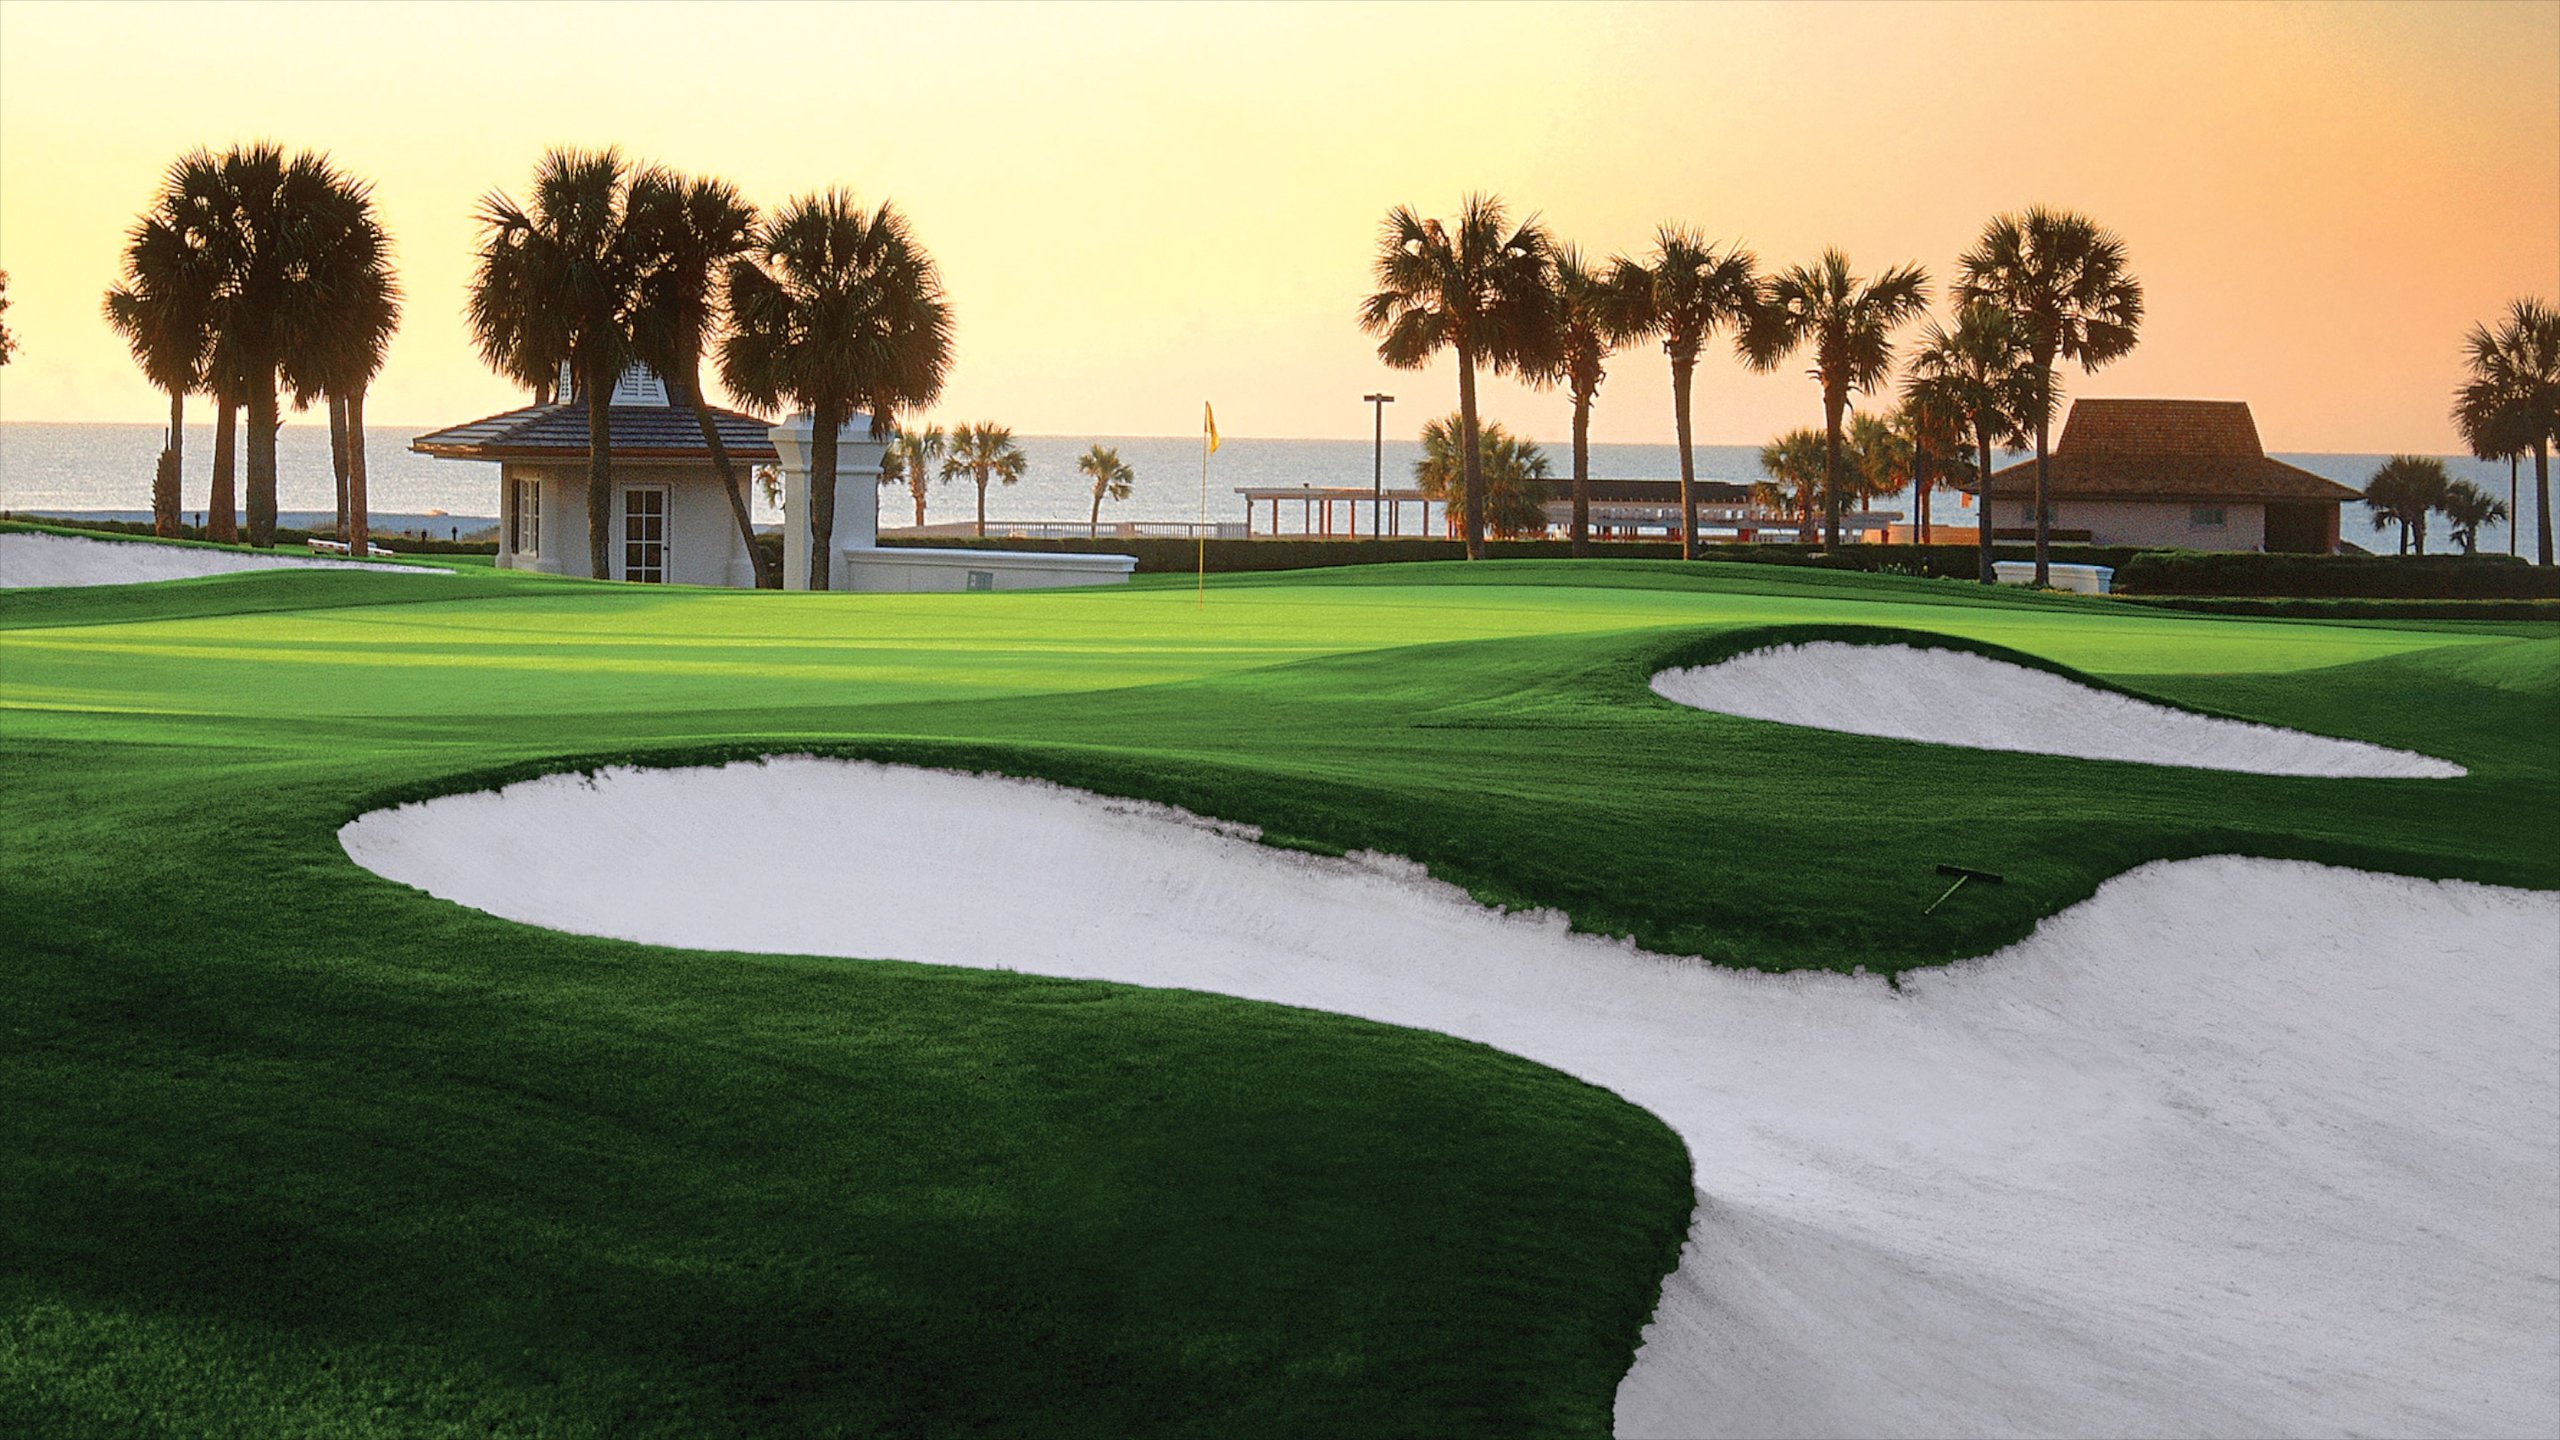 Top 10 Golf Resorts In Myrtle Beach, Sc 43 Hotels And -6022